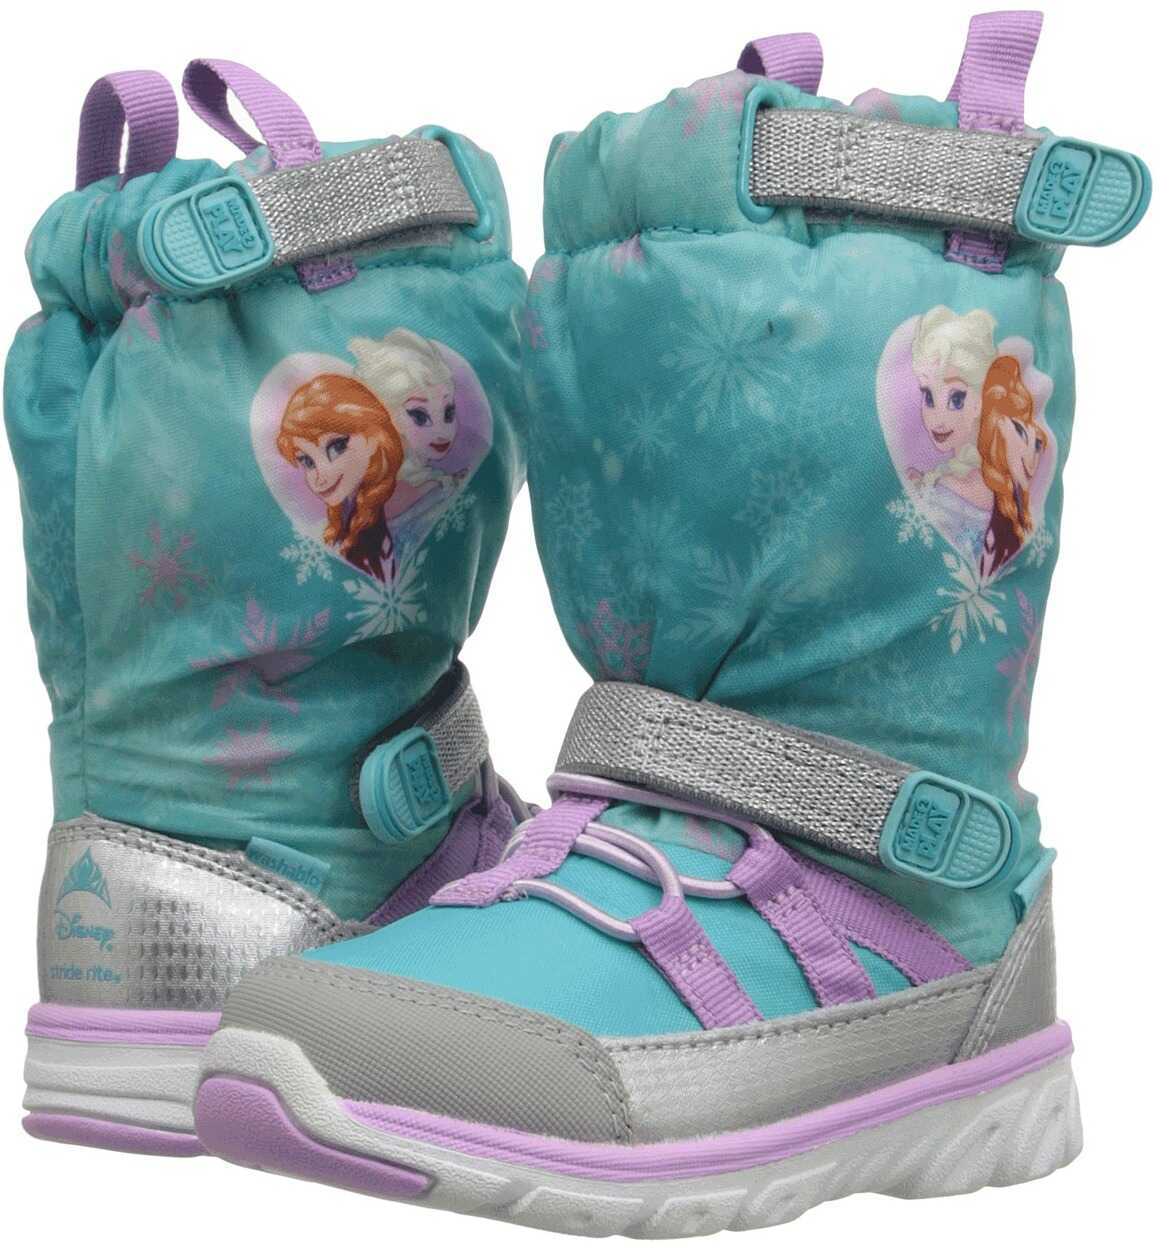 Stride Rite Frozen Made 2 Play Sneaker Boot (Toddler) Turquoise Multi